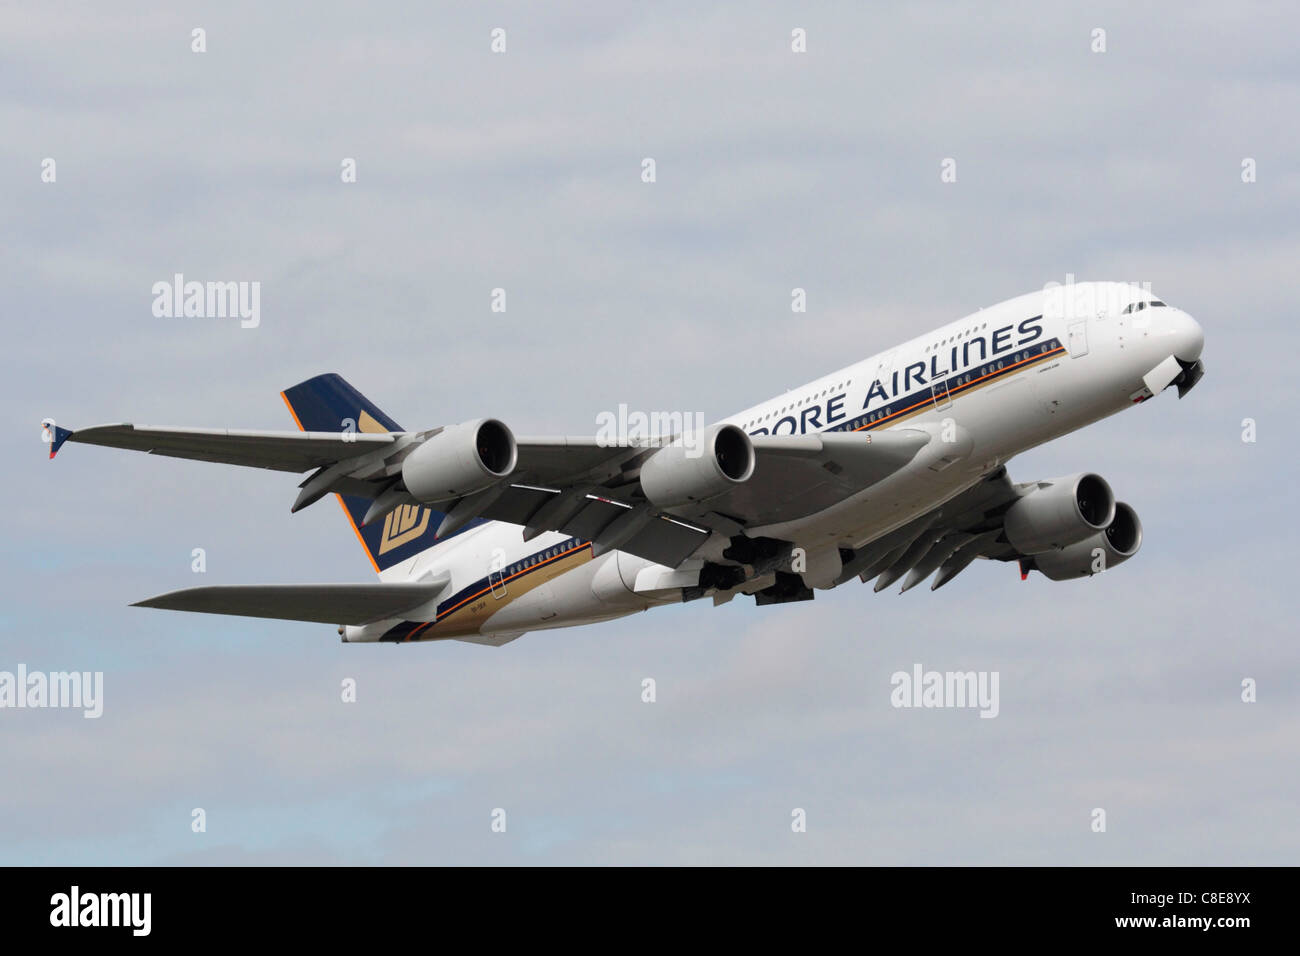 Singapore Airlines Airbus A380 long haul passenger jet plane on takeoff from London Heathrow Airport - Stock Image